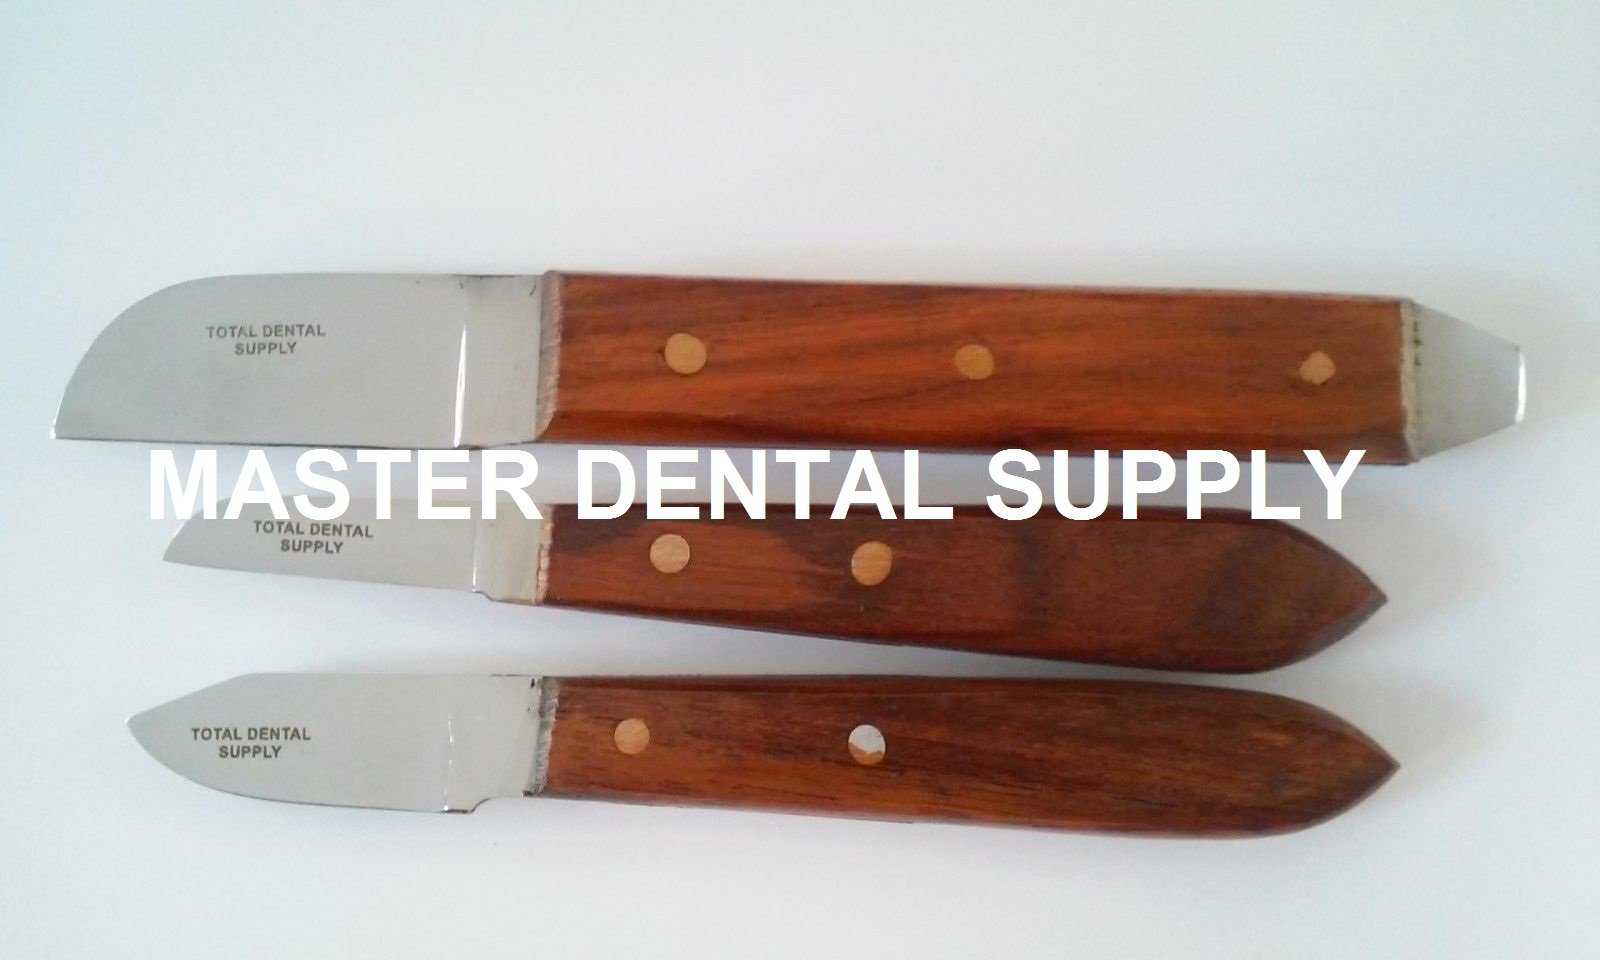 Set of 3 Dental Lab Plaster Knives includes one each 6R, 7R and 12R Knife as pictured. Great also for Hobby or Carving. Wooden Handle